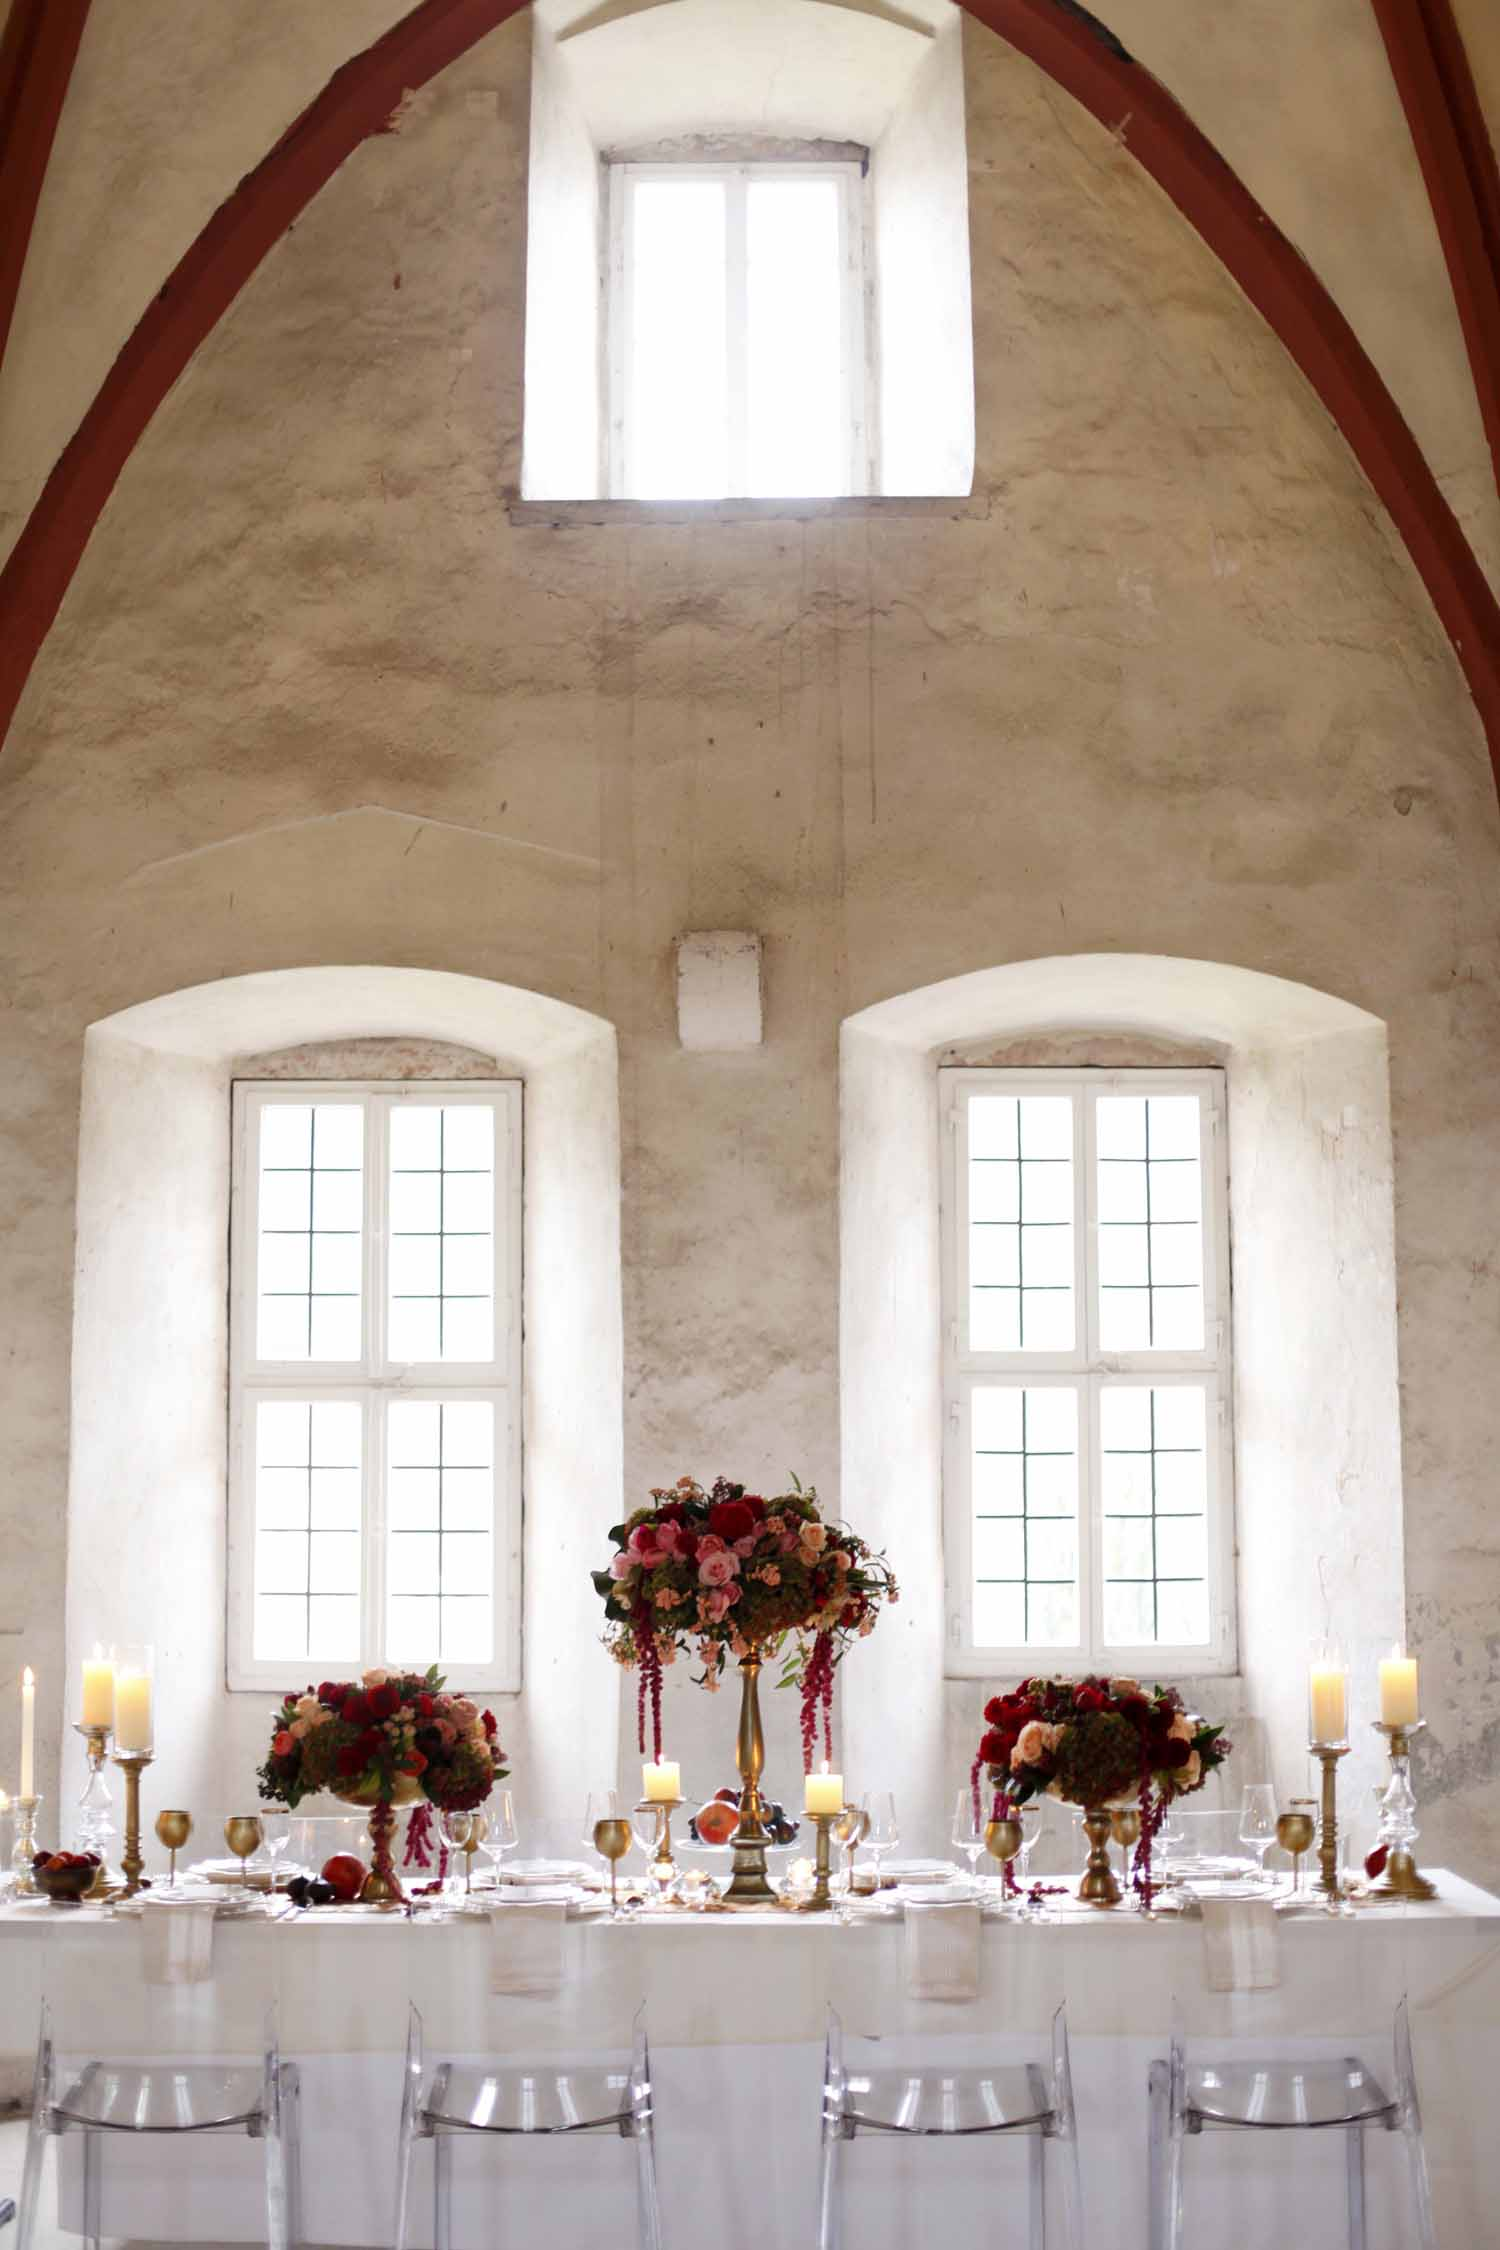 glamorous table scape for Wedding Style Shoot in Kloster Eberbach, Germany, designed by Flora Nova Design, Seattle